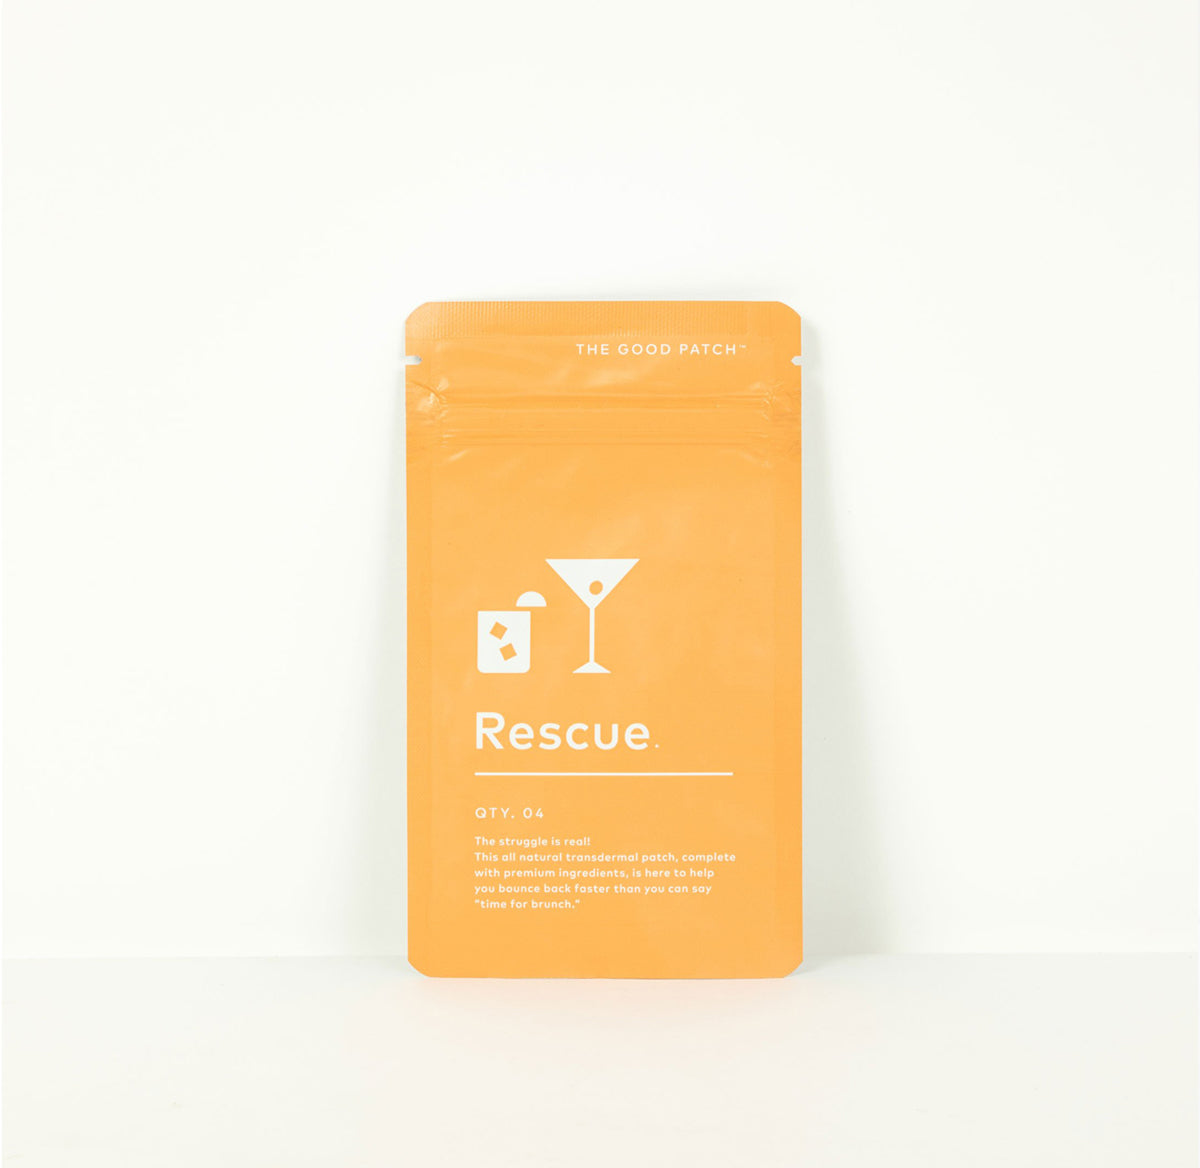 Rescue - The Good Patch